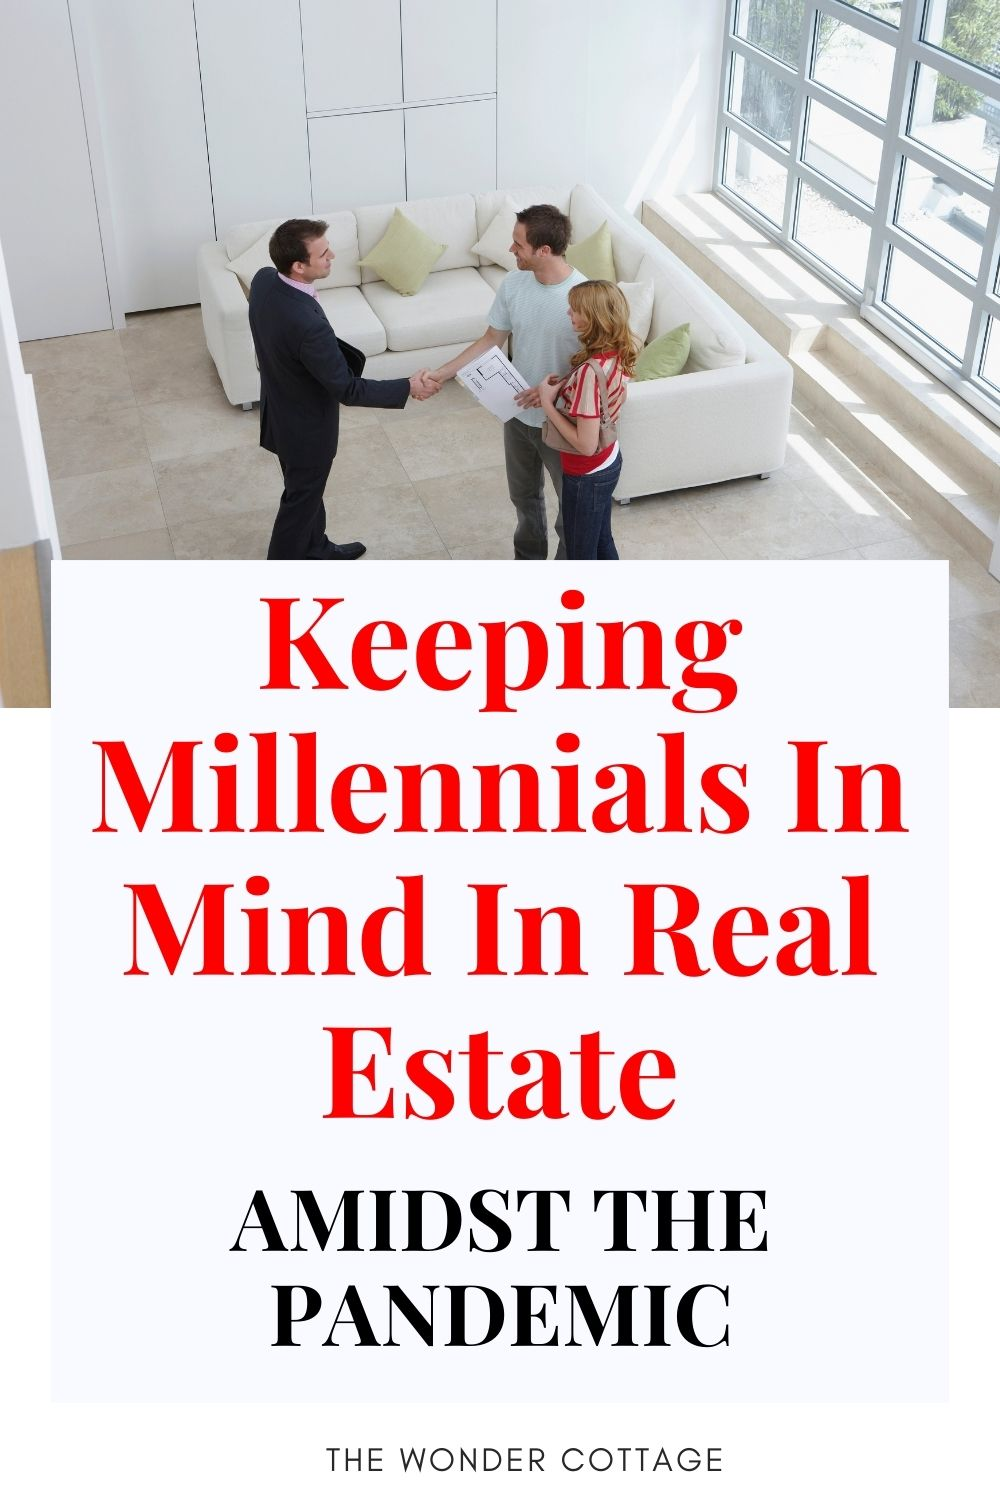 Keeping millennials in mind in real estate amidst the pandemic